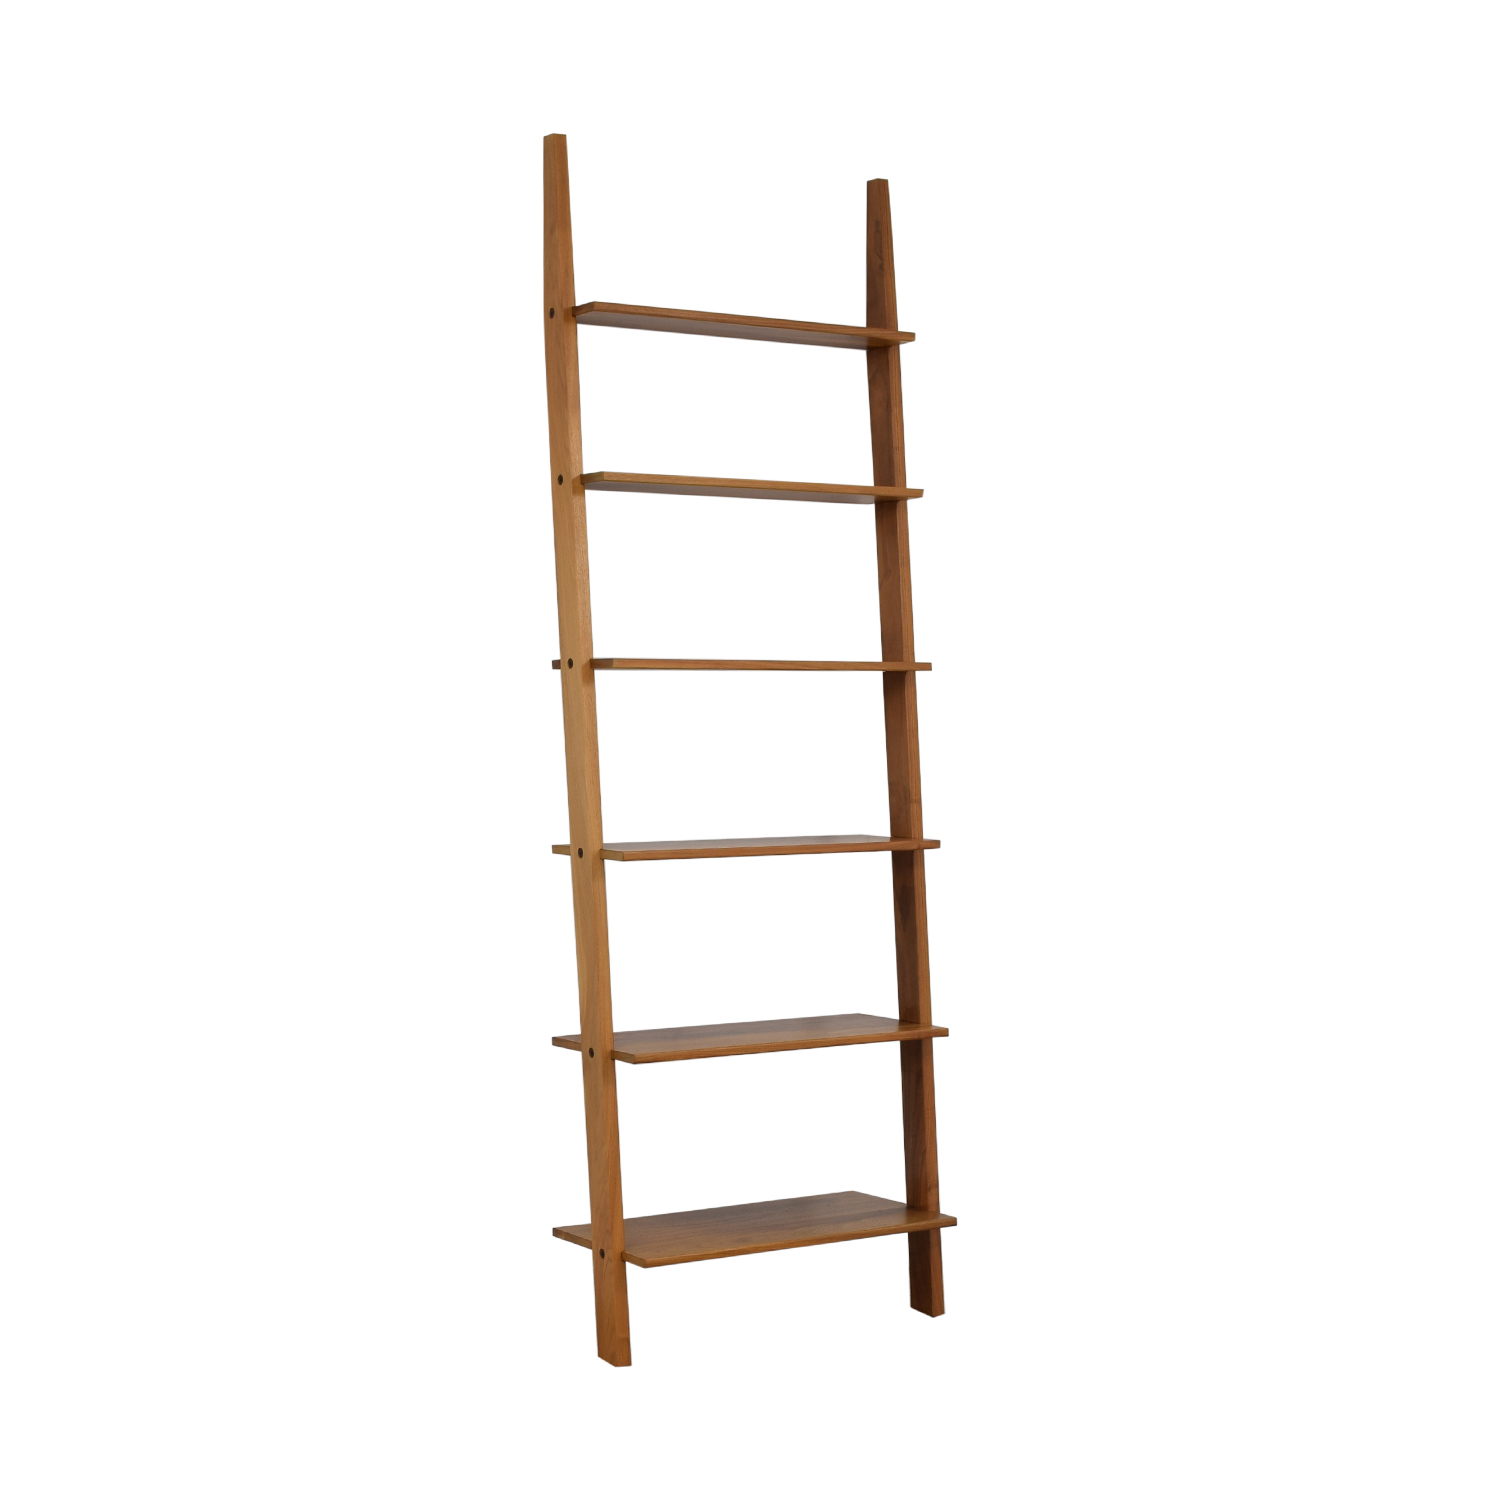 Room & Board Room & Board Pisa Leaning Bookshelf on sale